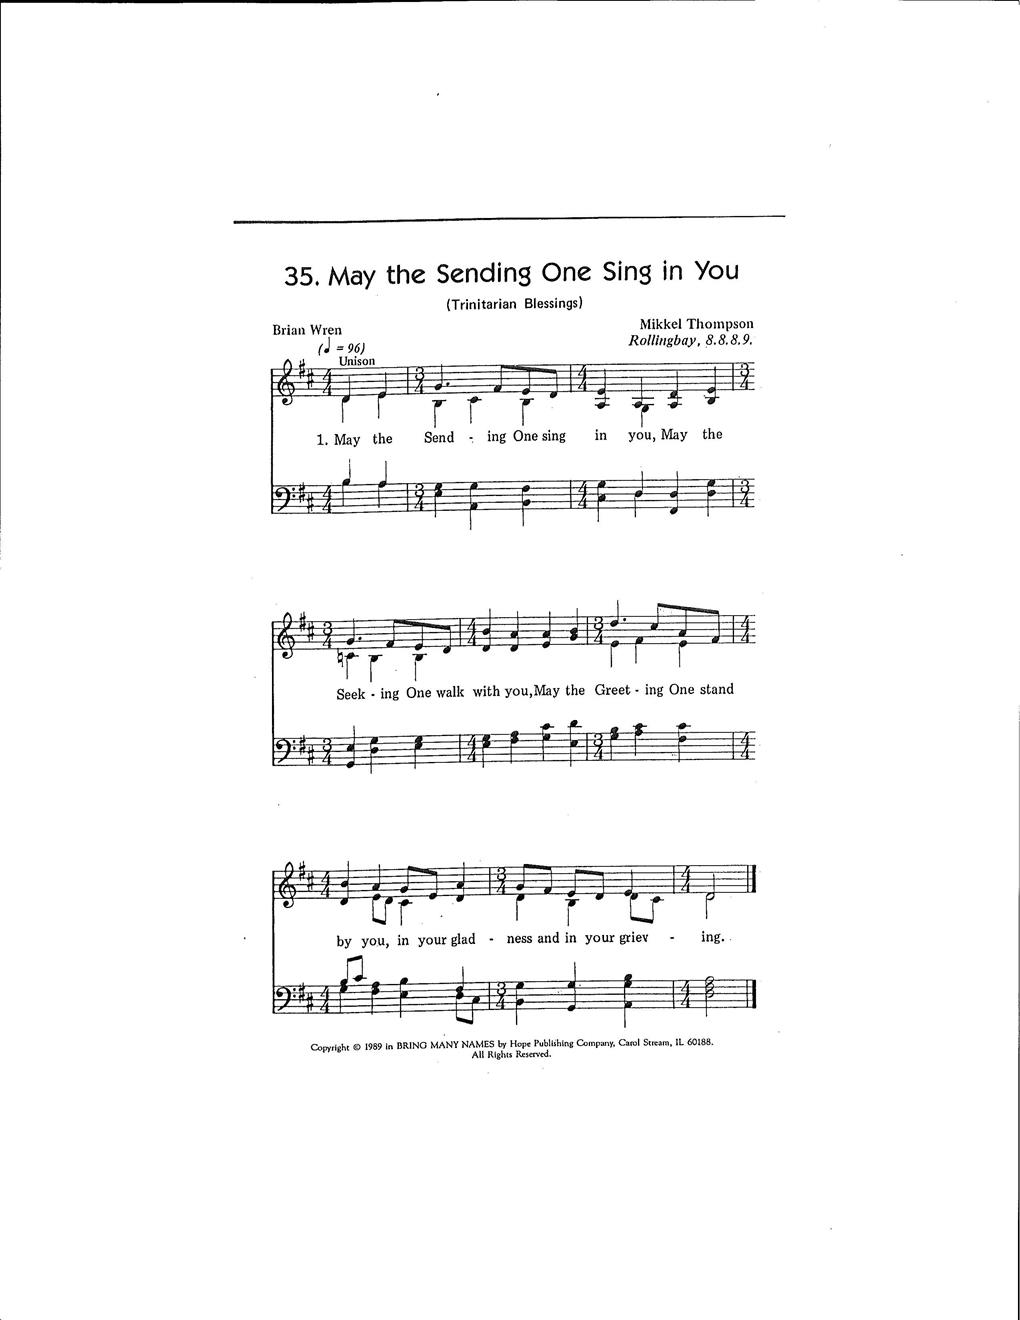 May the Sending One Sing in You (Trinitarian Blessings) Cover Image